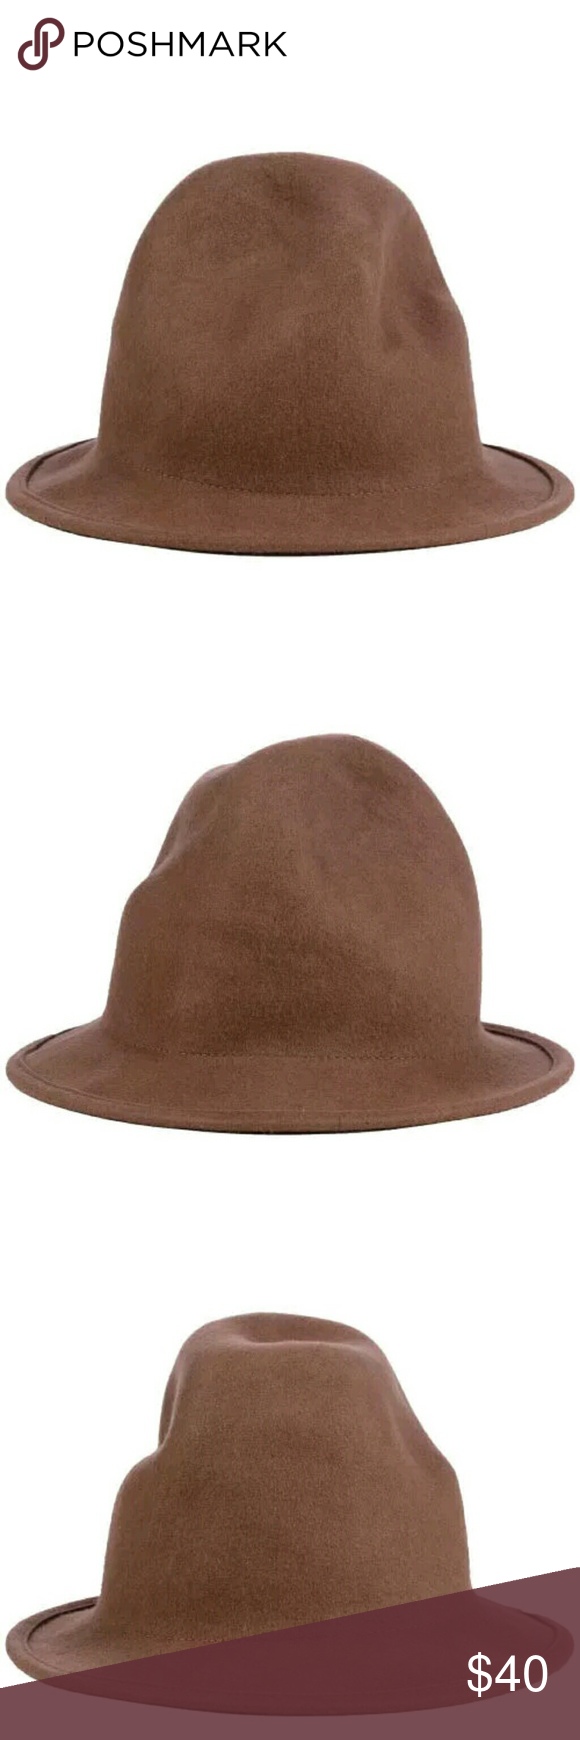 eb509c3e994 Smokey The Bear Tall Brown Mountie Hat OSFM Smokey The Bear Tall Brown  Mountie Hat OSFM brand new with tags lids Accessories Hats